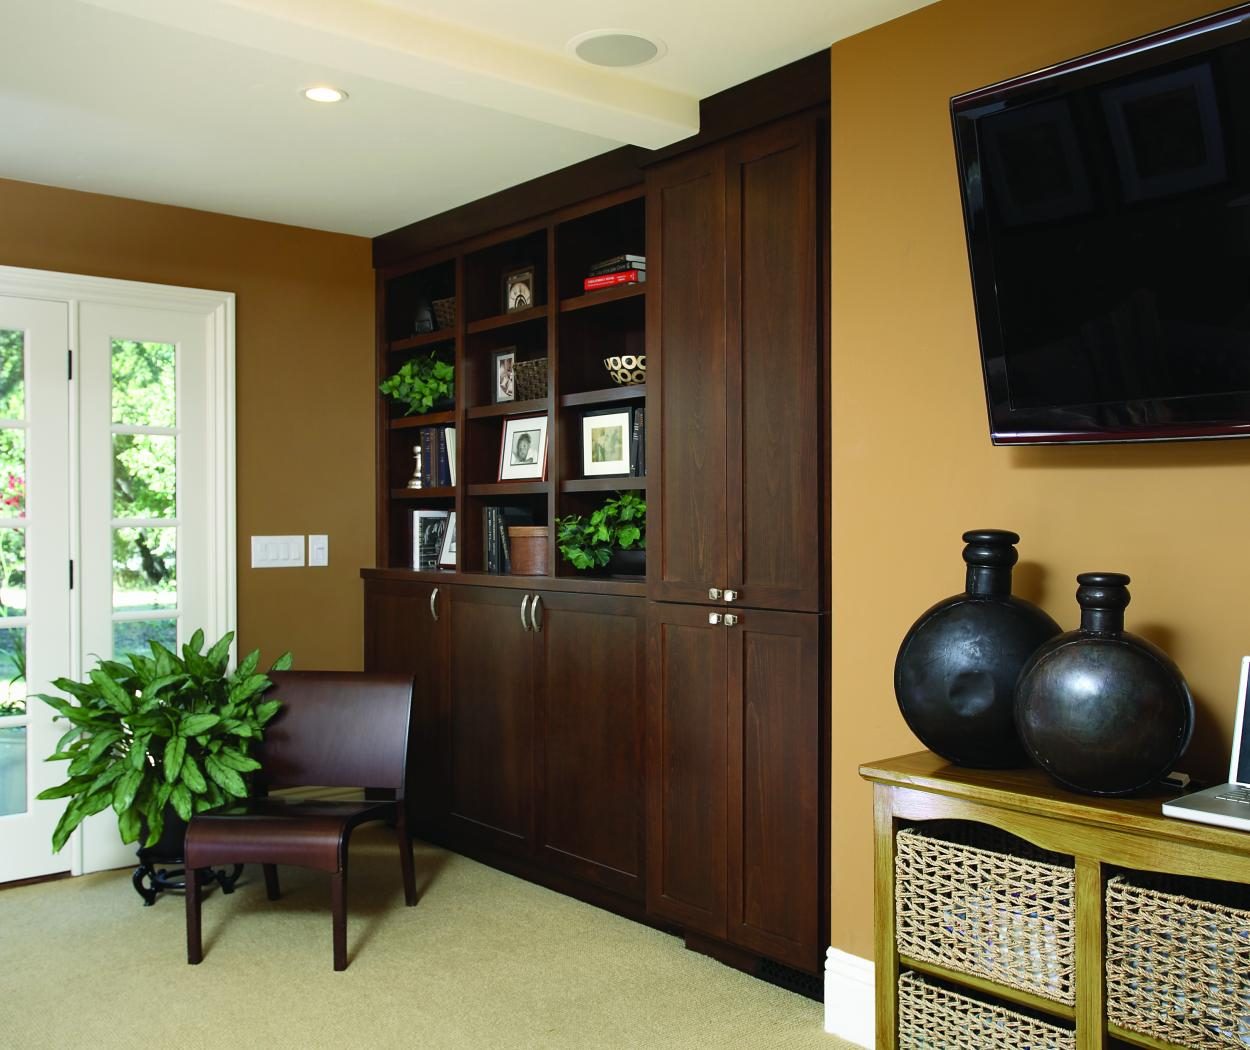 Traditional Chocolate Stained Family Room Built-In with Open Shelves and Chrome Hardware